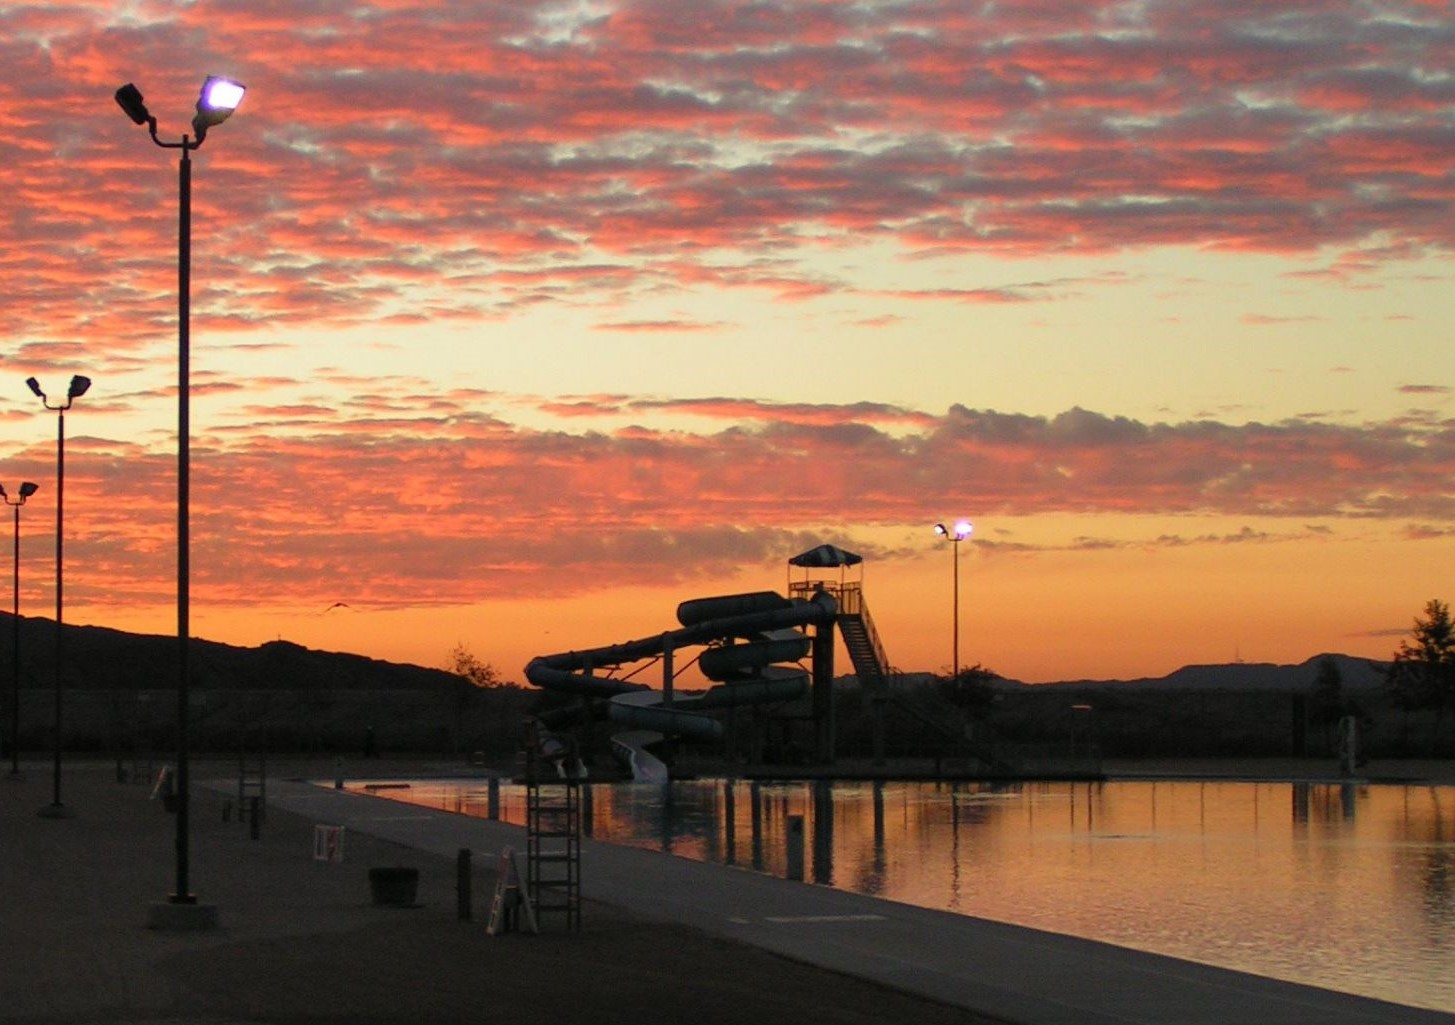 The Hansen Dam Aquatic Center at sunset, as captured by a Lake View Terrace Resident.